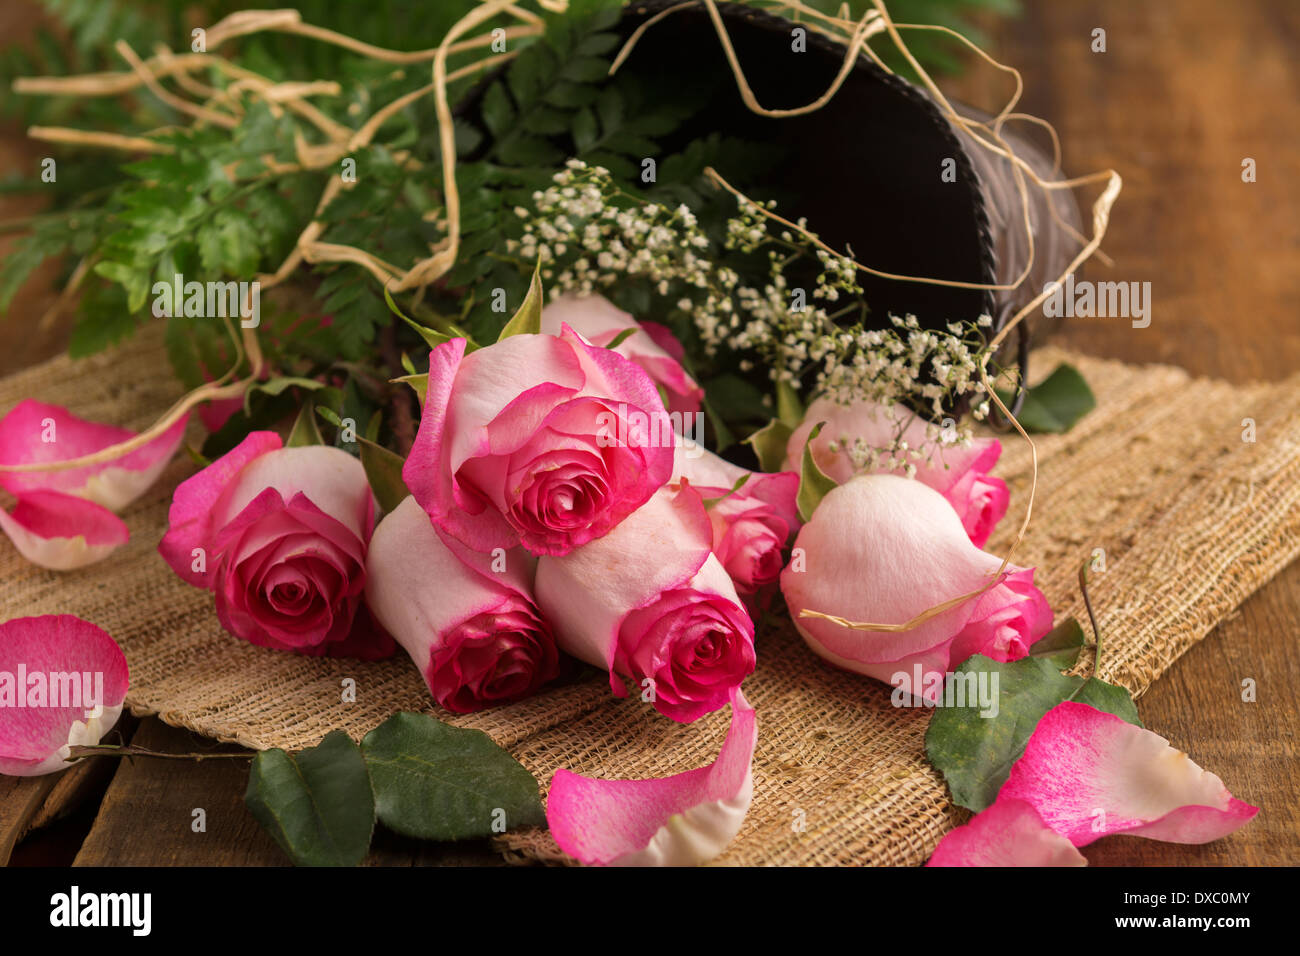 Pink roses on burlap and metal bucket ready to arrange - Stock Image